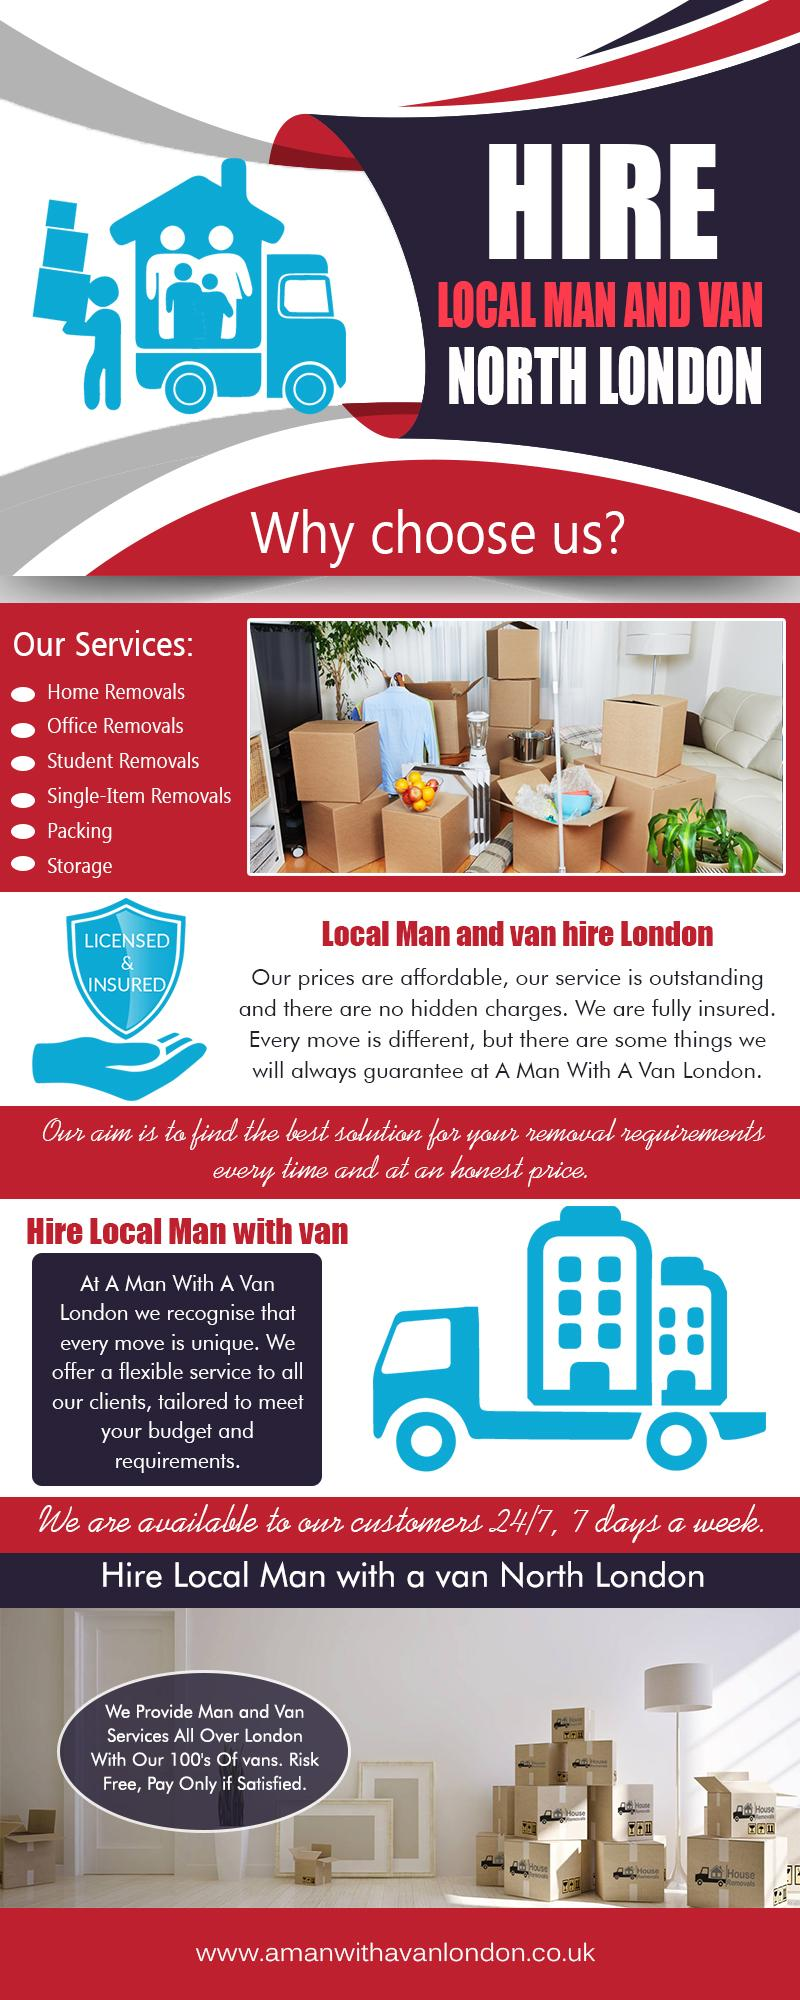 Hire Local Man with van London